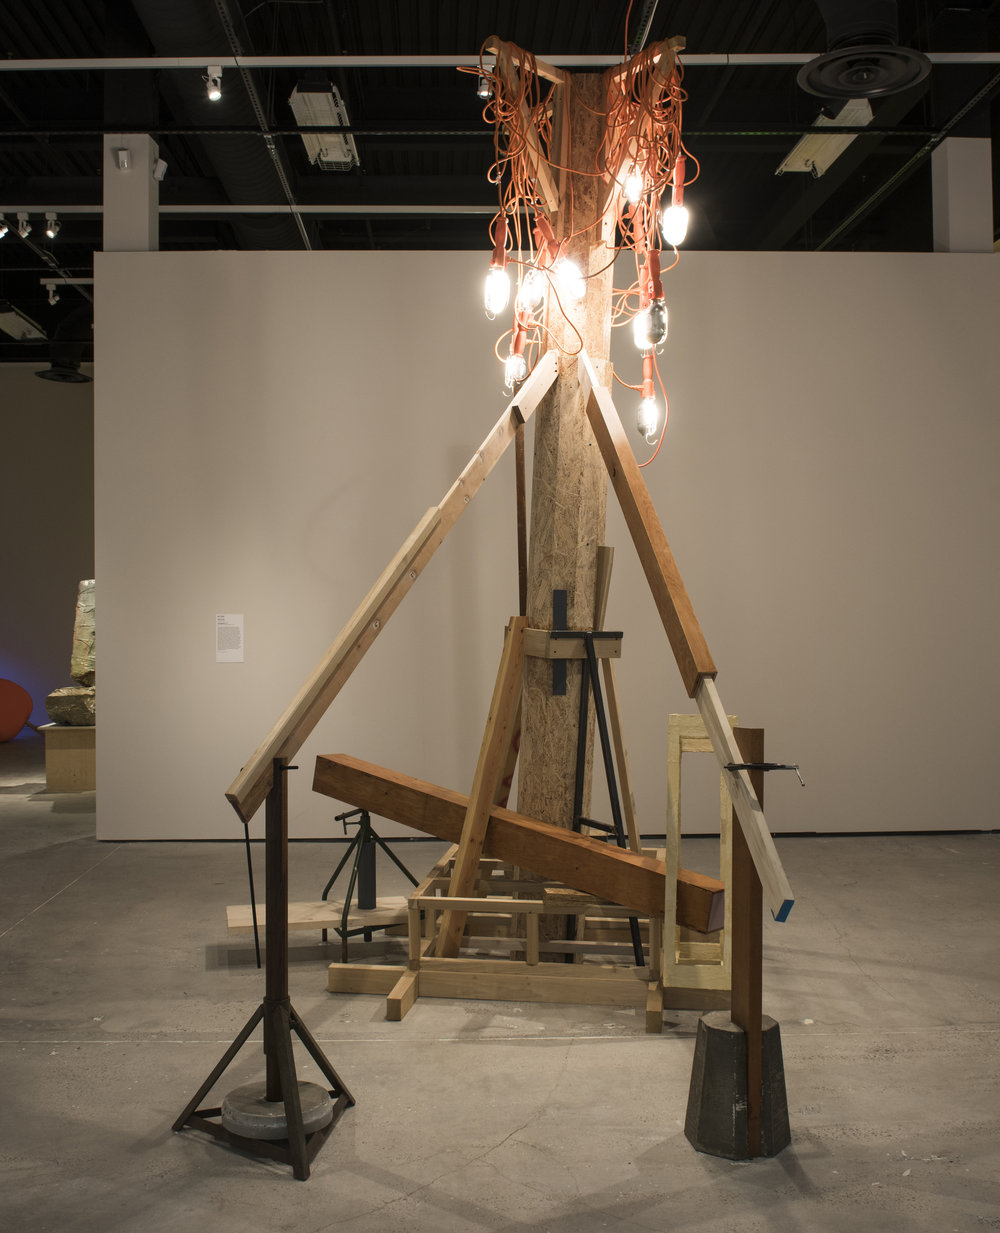 City Beautiful   2017  OSB, Concrete, Various Woods, Steel,  Work Lights, Plaster, C clamp. Dimensions Variable  Exhibition view at Ringling Museum of Art, Sarasota FL  http://www.skywaytampabay.com/